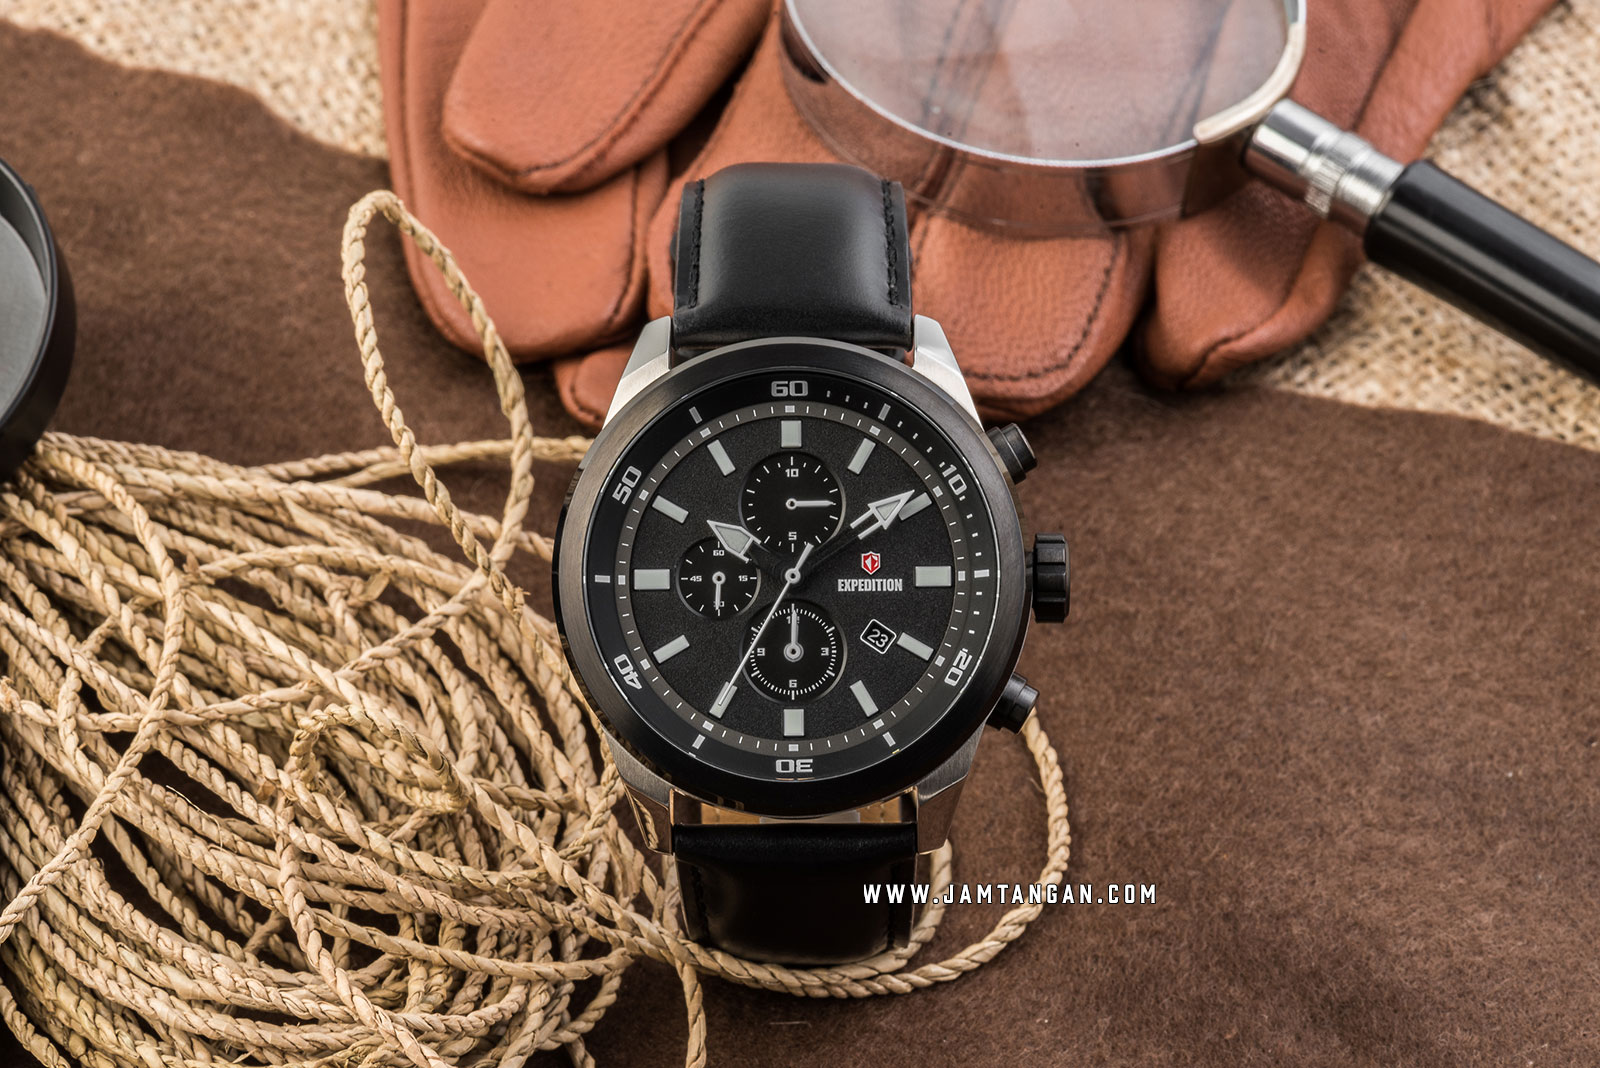 Expedition E 6776 MC LTBBA Chronograph Men Black Dial Black Leather Strap Machtwatch